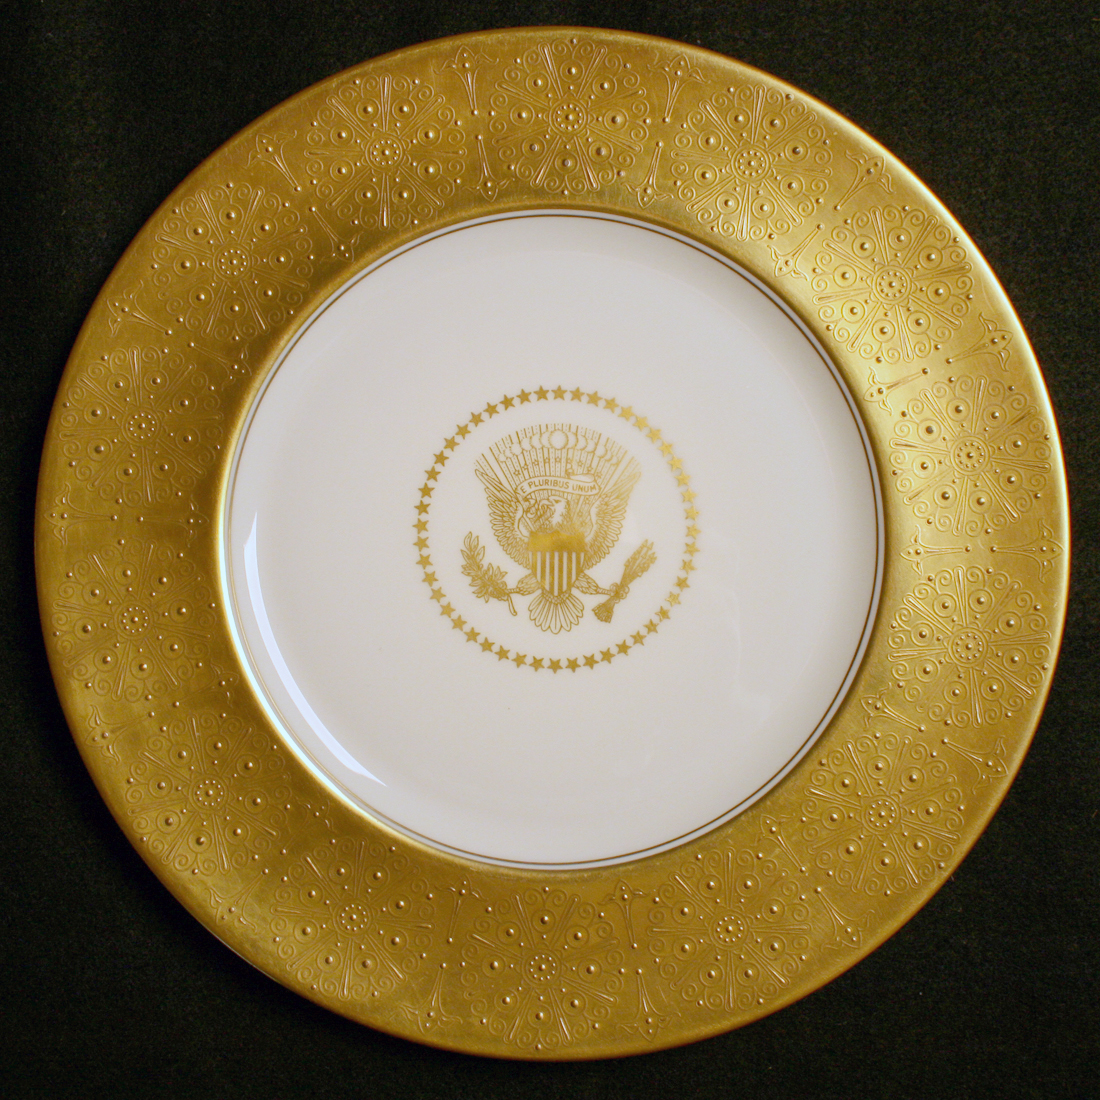 dwight-eisenhower-china-service-plate-1